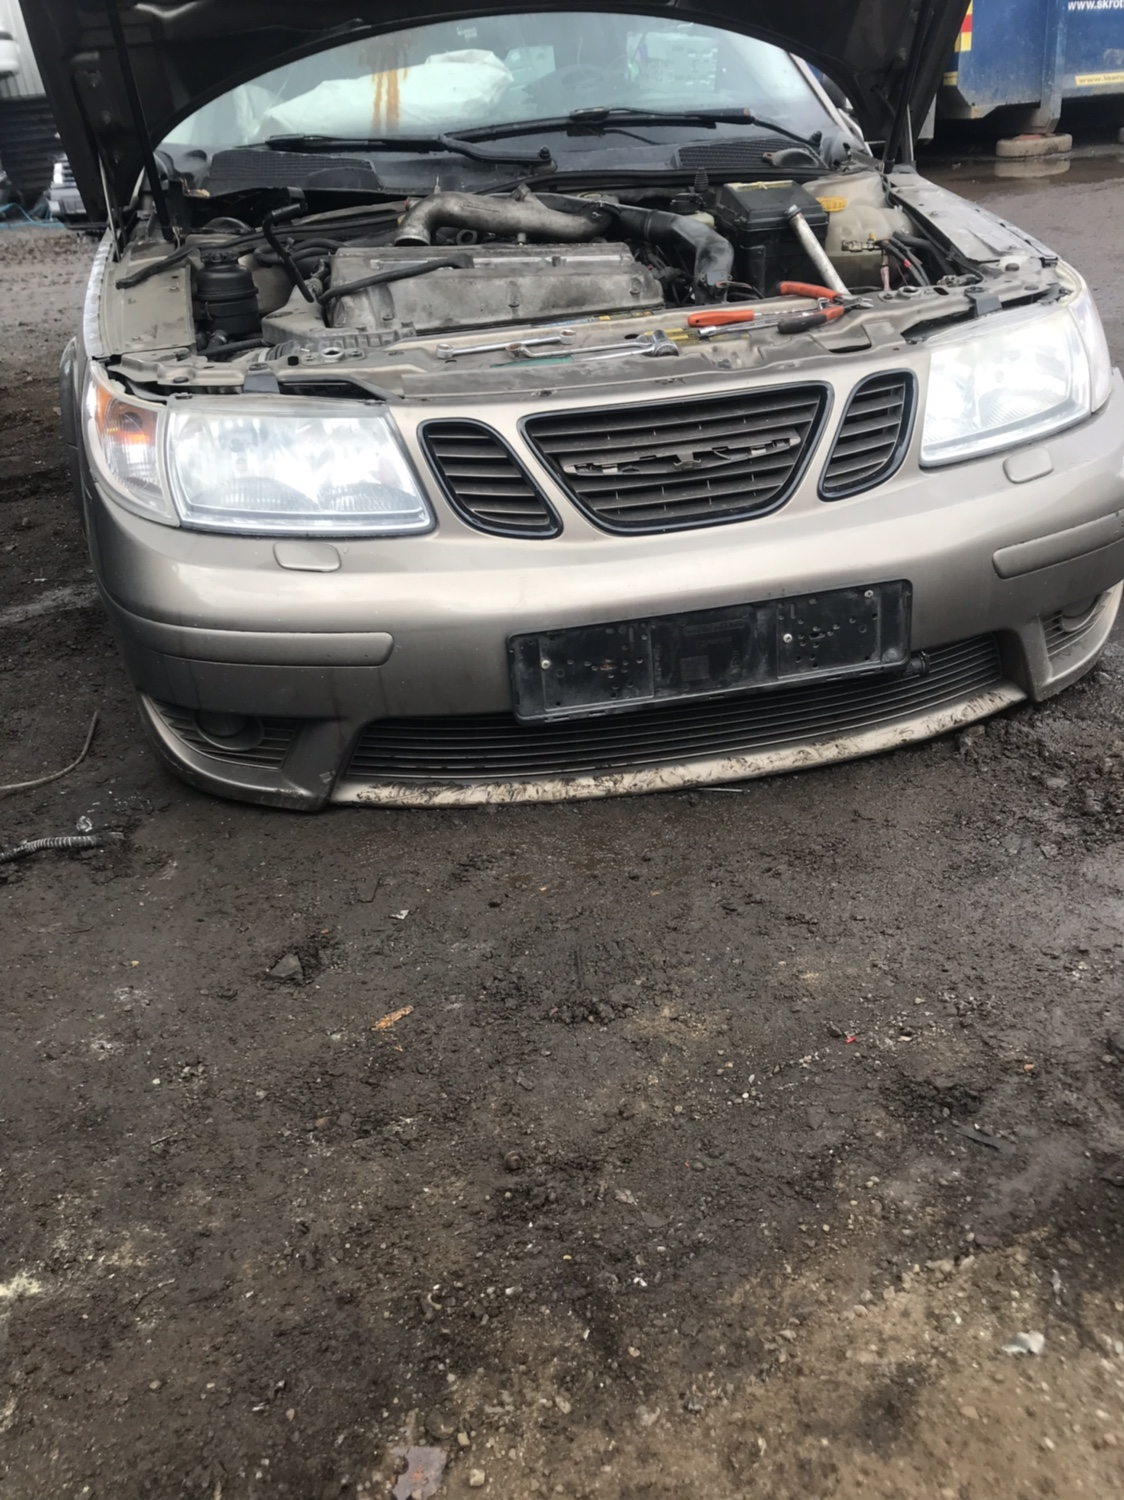 Saab 9-5 front - trionictuning com